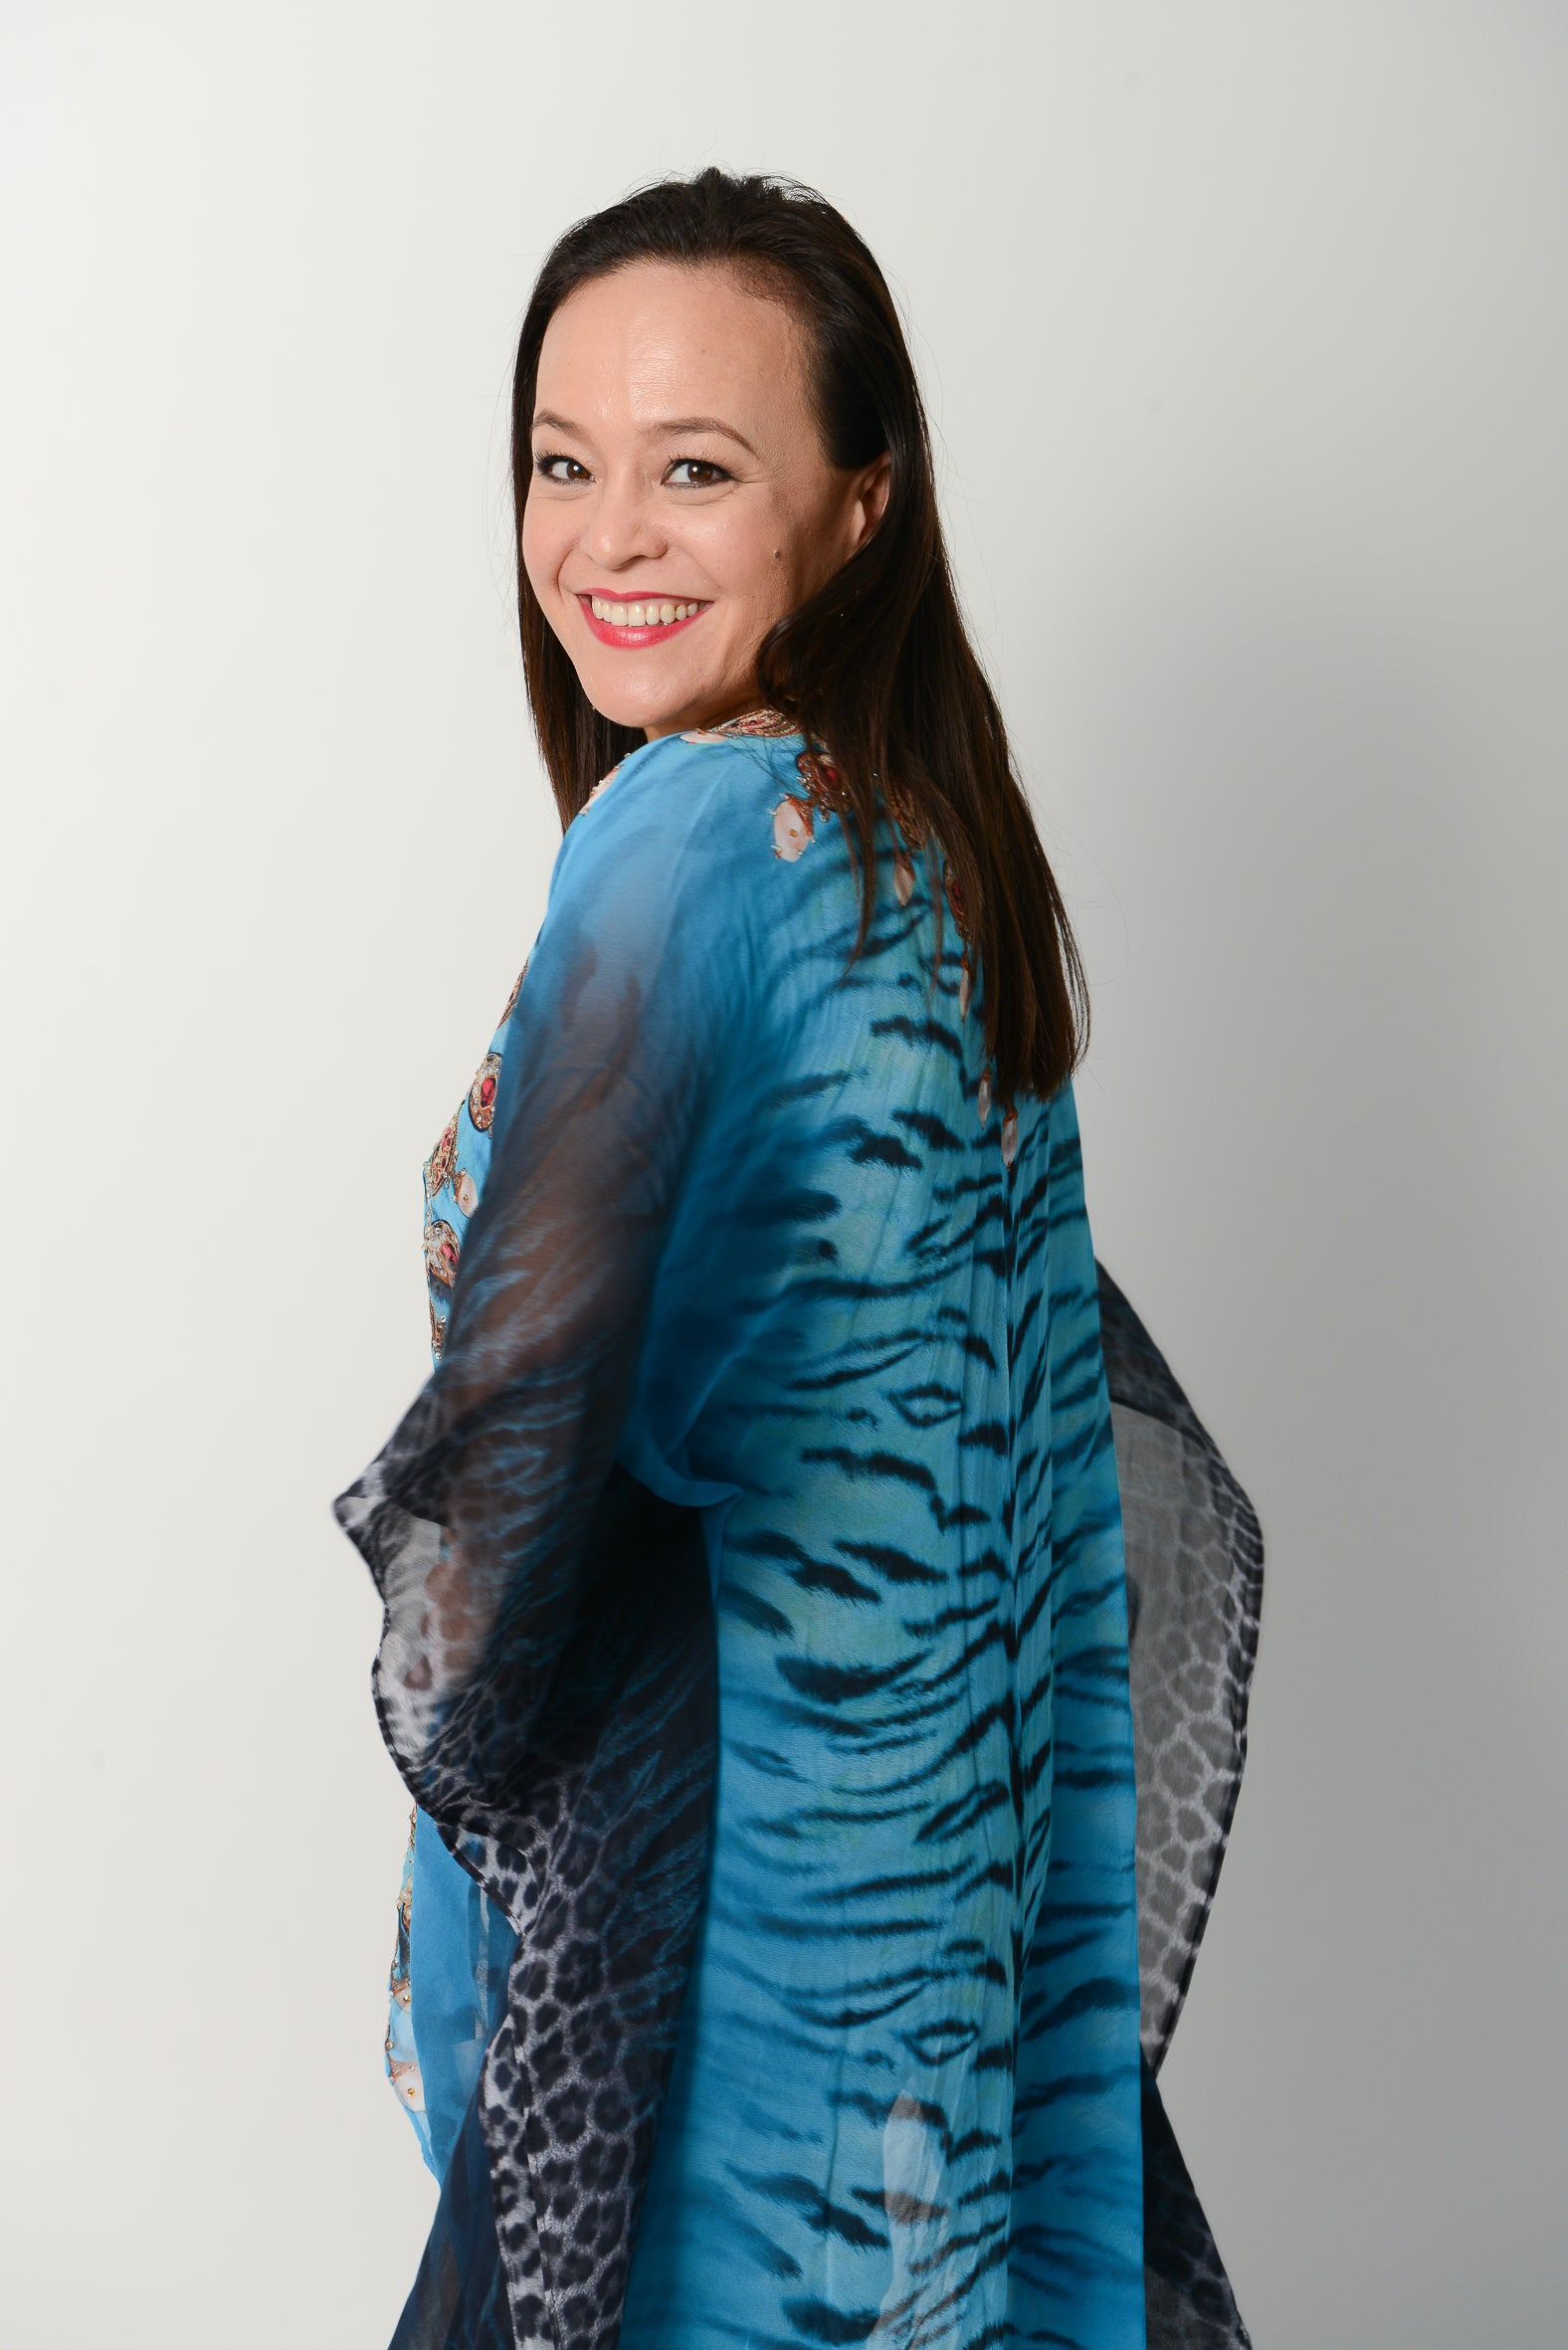 Exotic Blue Tiger Cape - GlamTanz Kaftans & Resortwear Sydney Australia